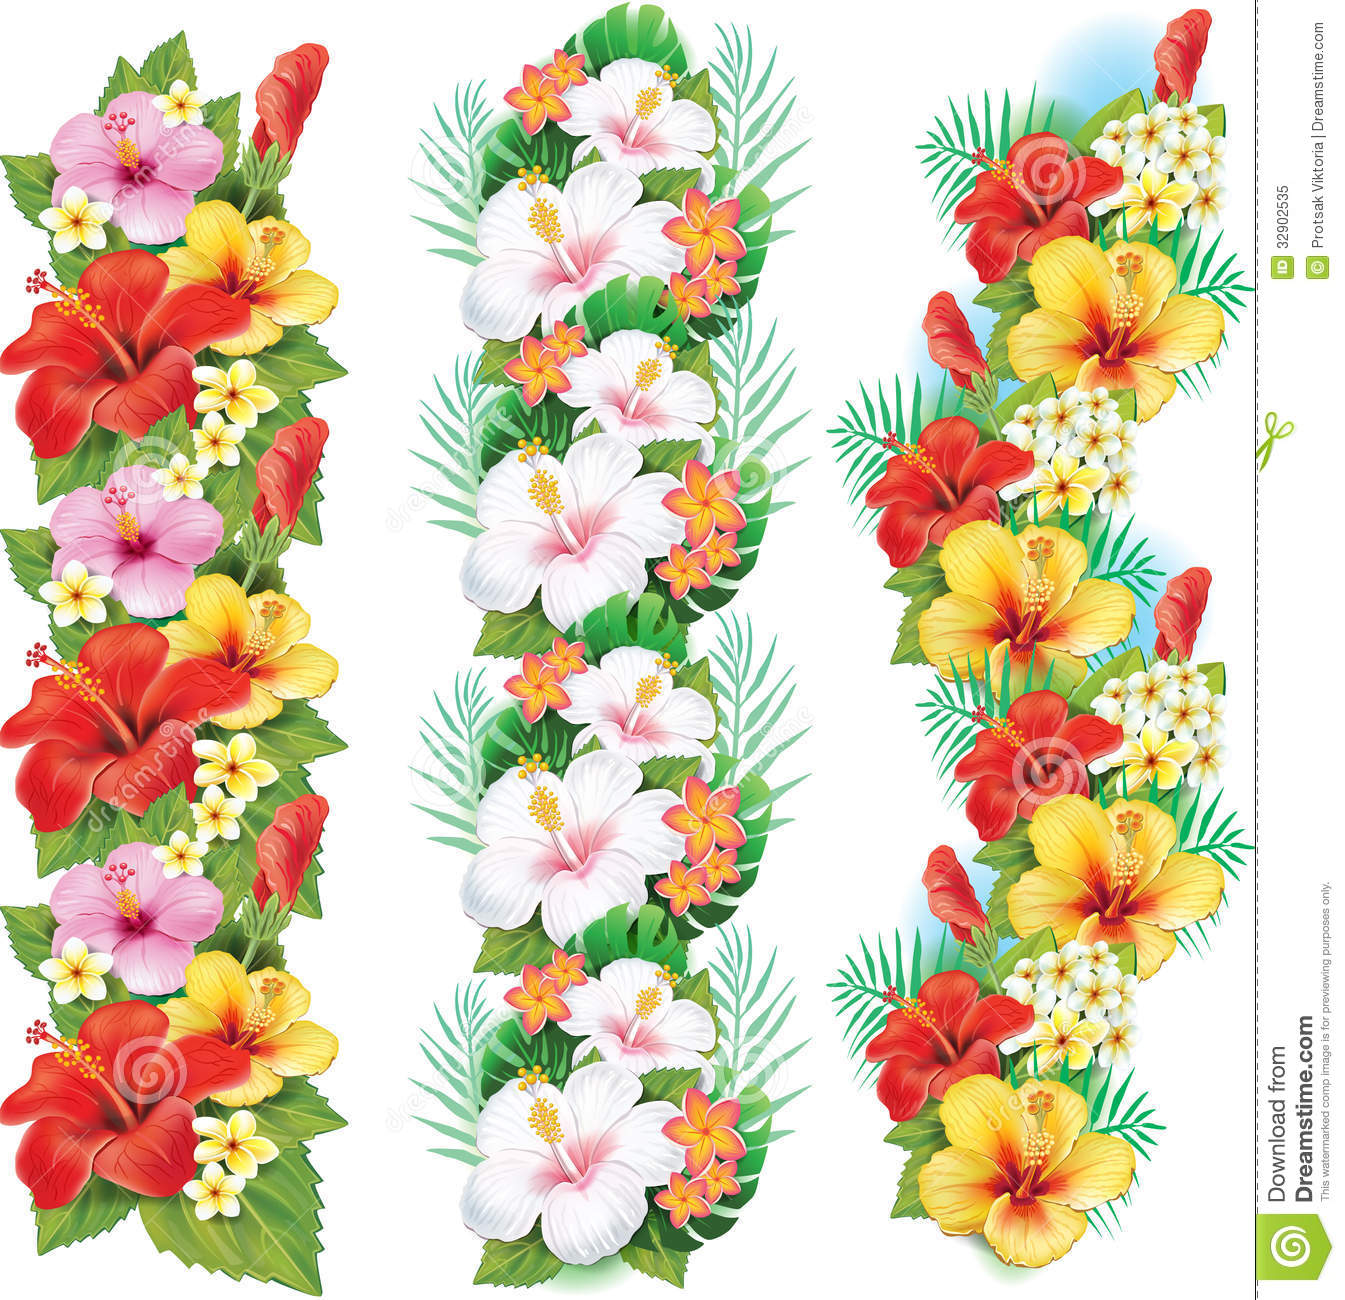 Hawaiian Flower Clip Art Outline - Floral delivery